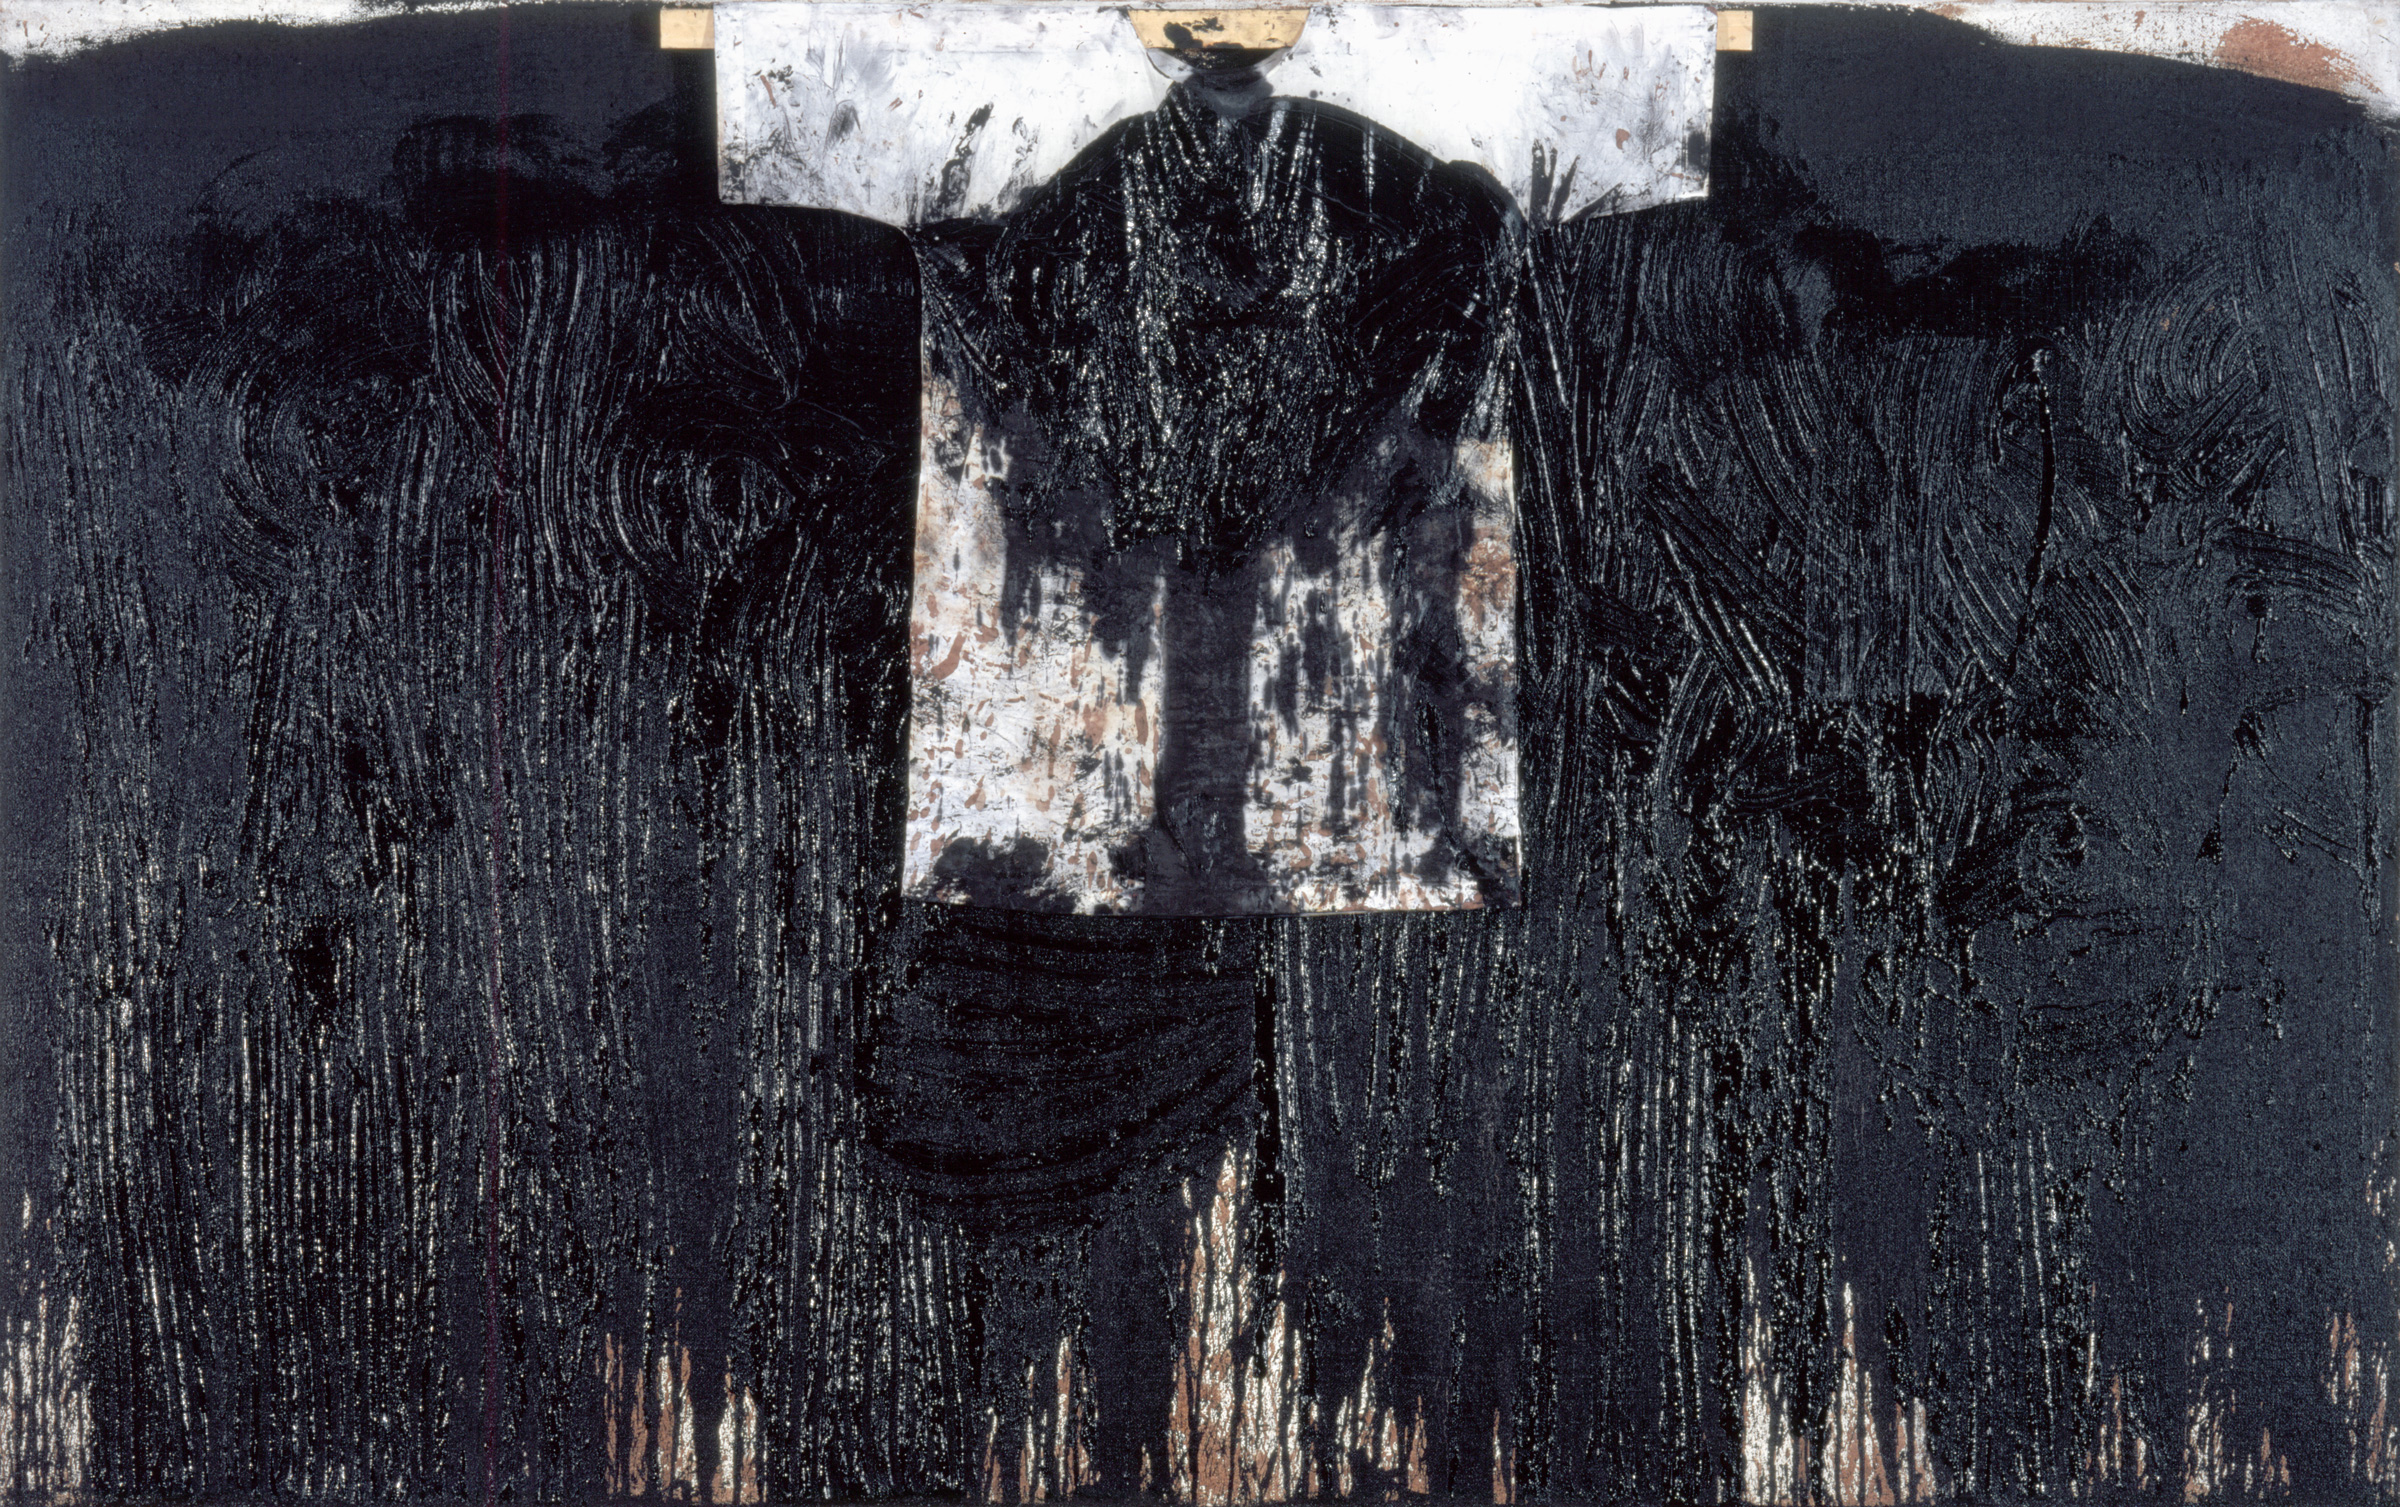 Hermann Nitsch 1997